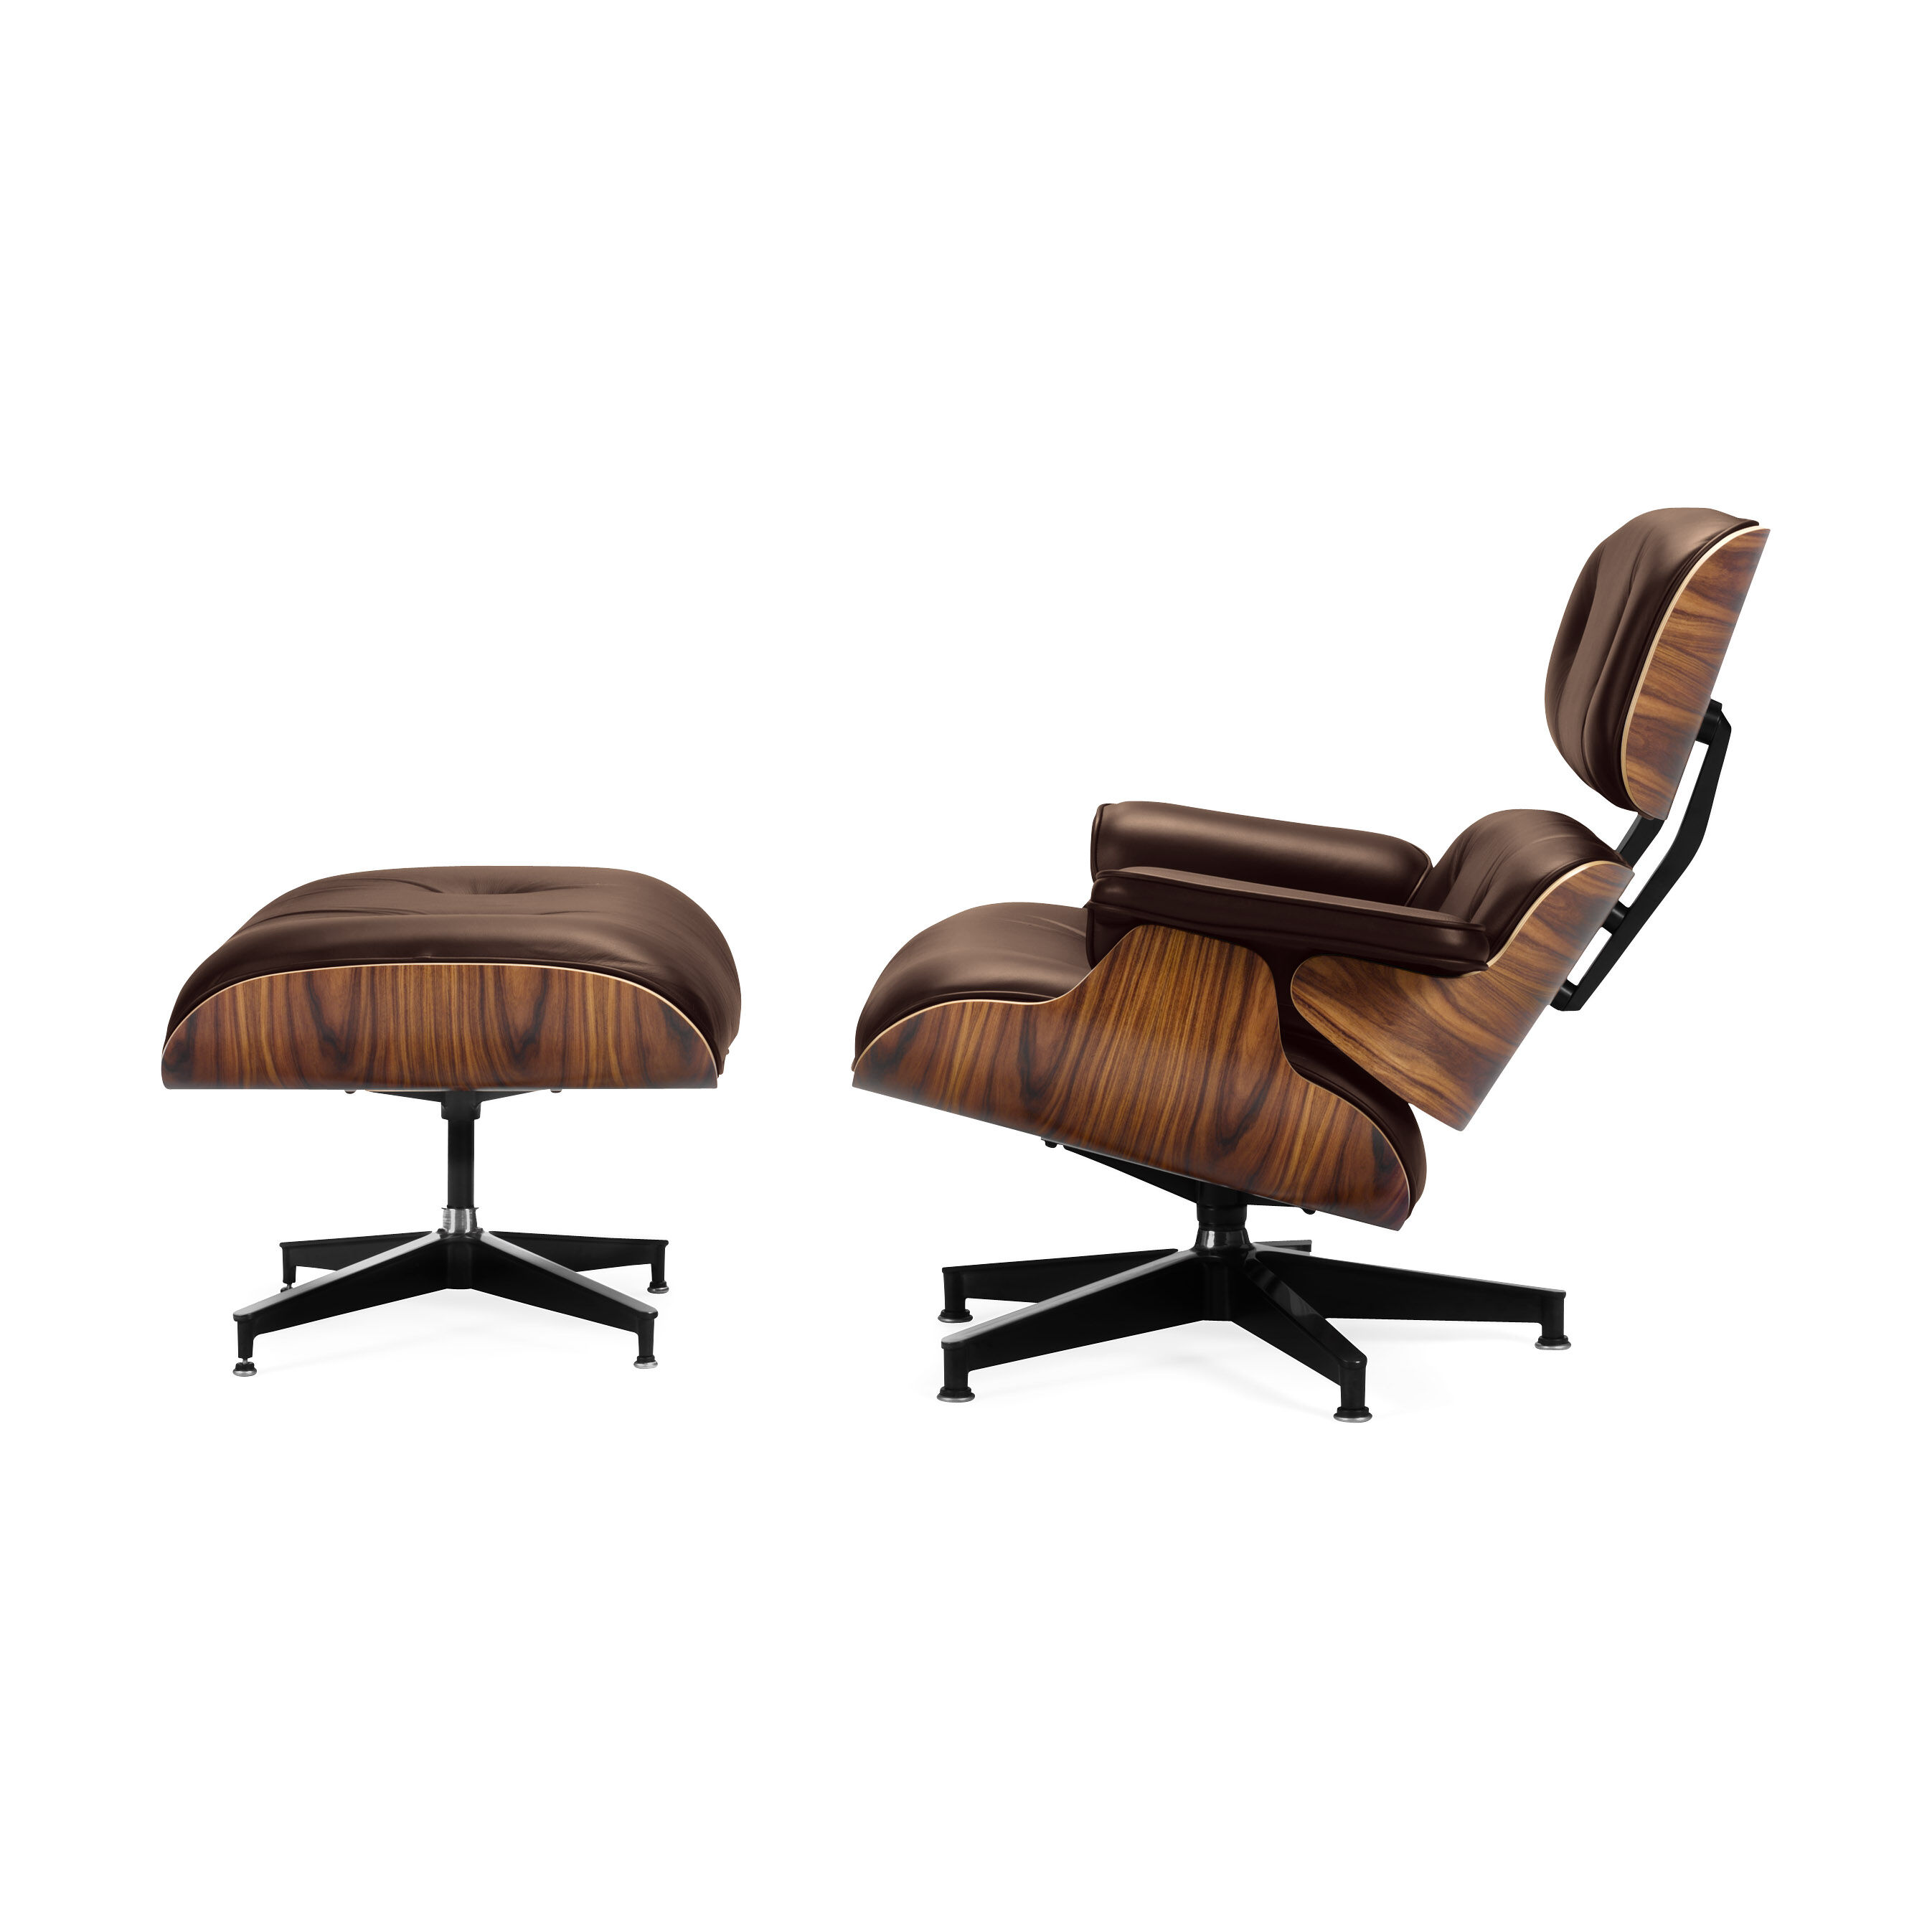 Gentil Eames Lounge Chair With Ottoman In Color Brown/ Walnut